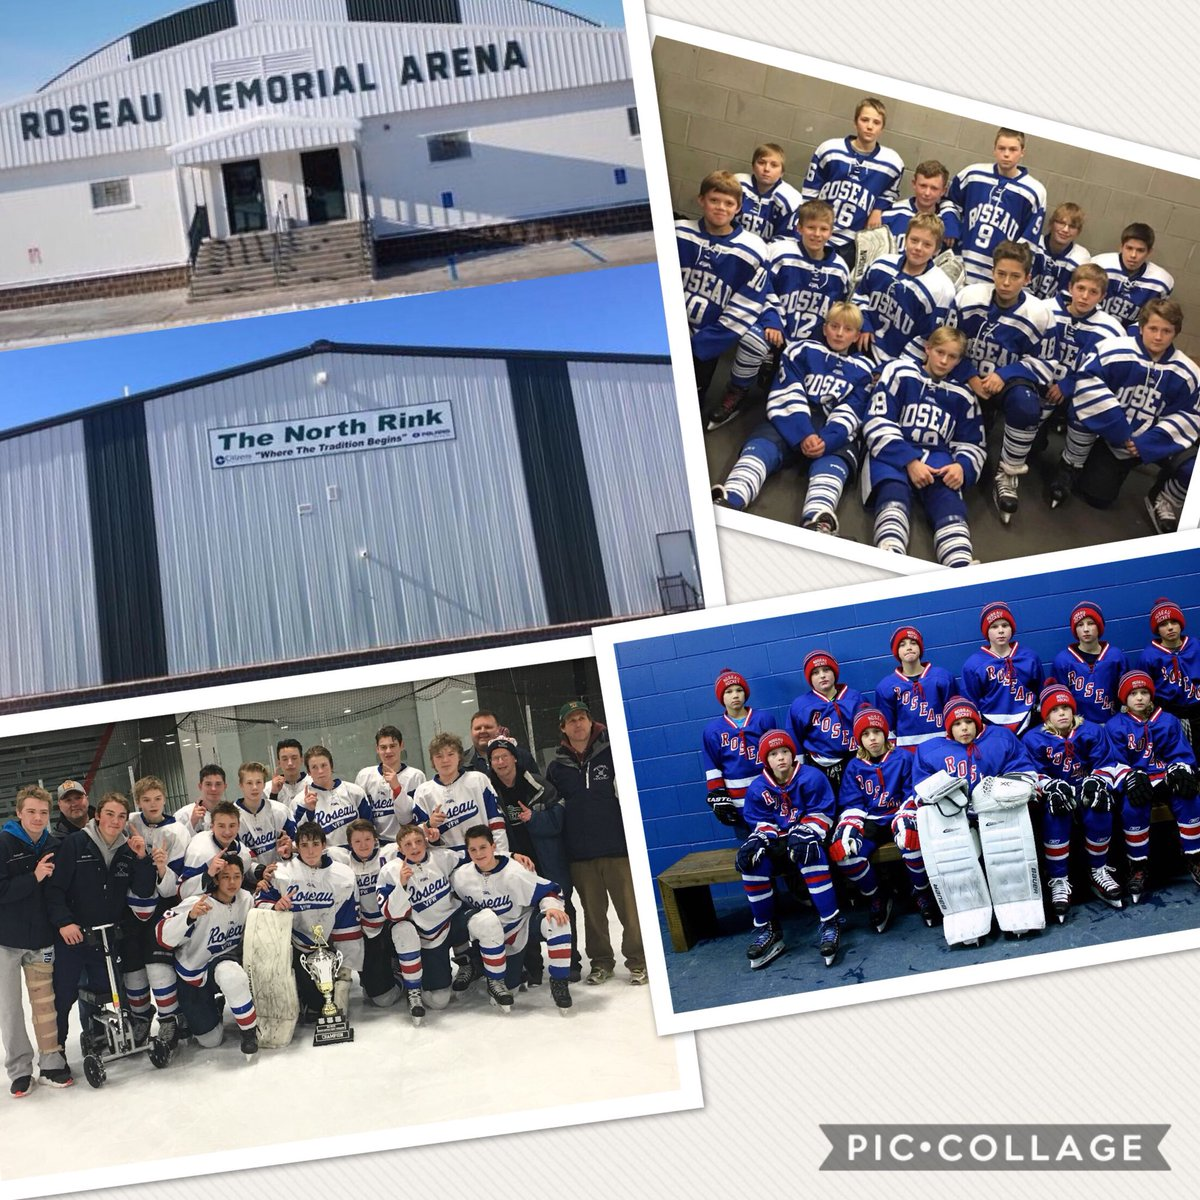 Roseau VFW Bantam AA Team, Roseau Peewee AA Team, Roseau Squirt A Team...Proud to call this HOME  #HDM2018 https://t.co/EFugHDqjMh